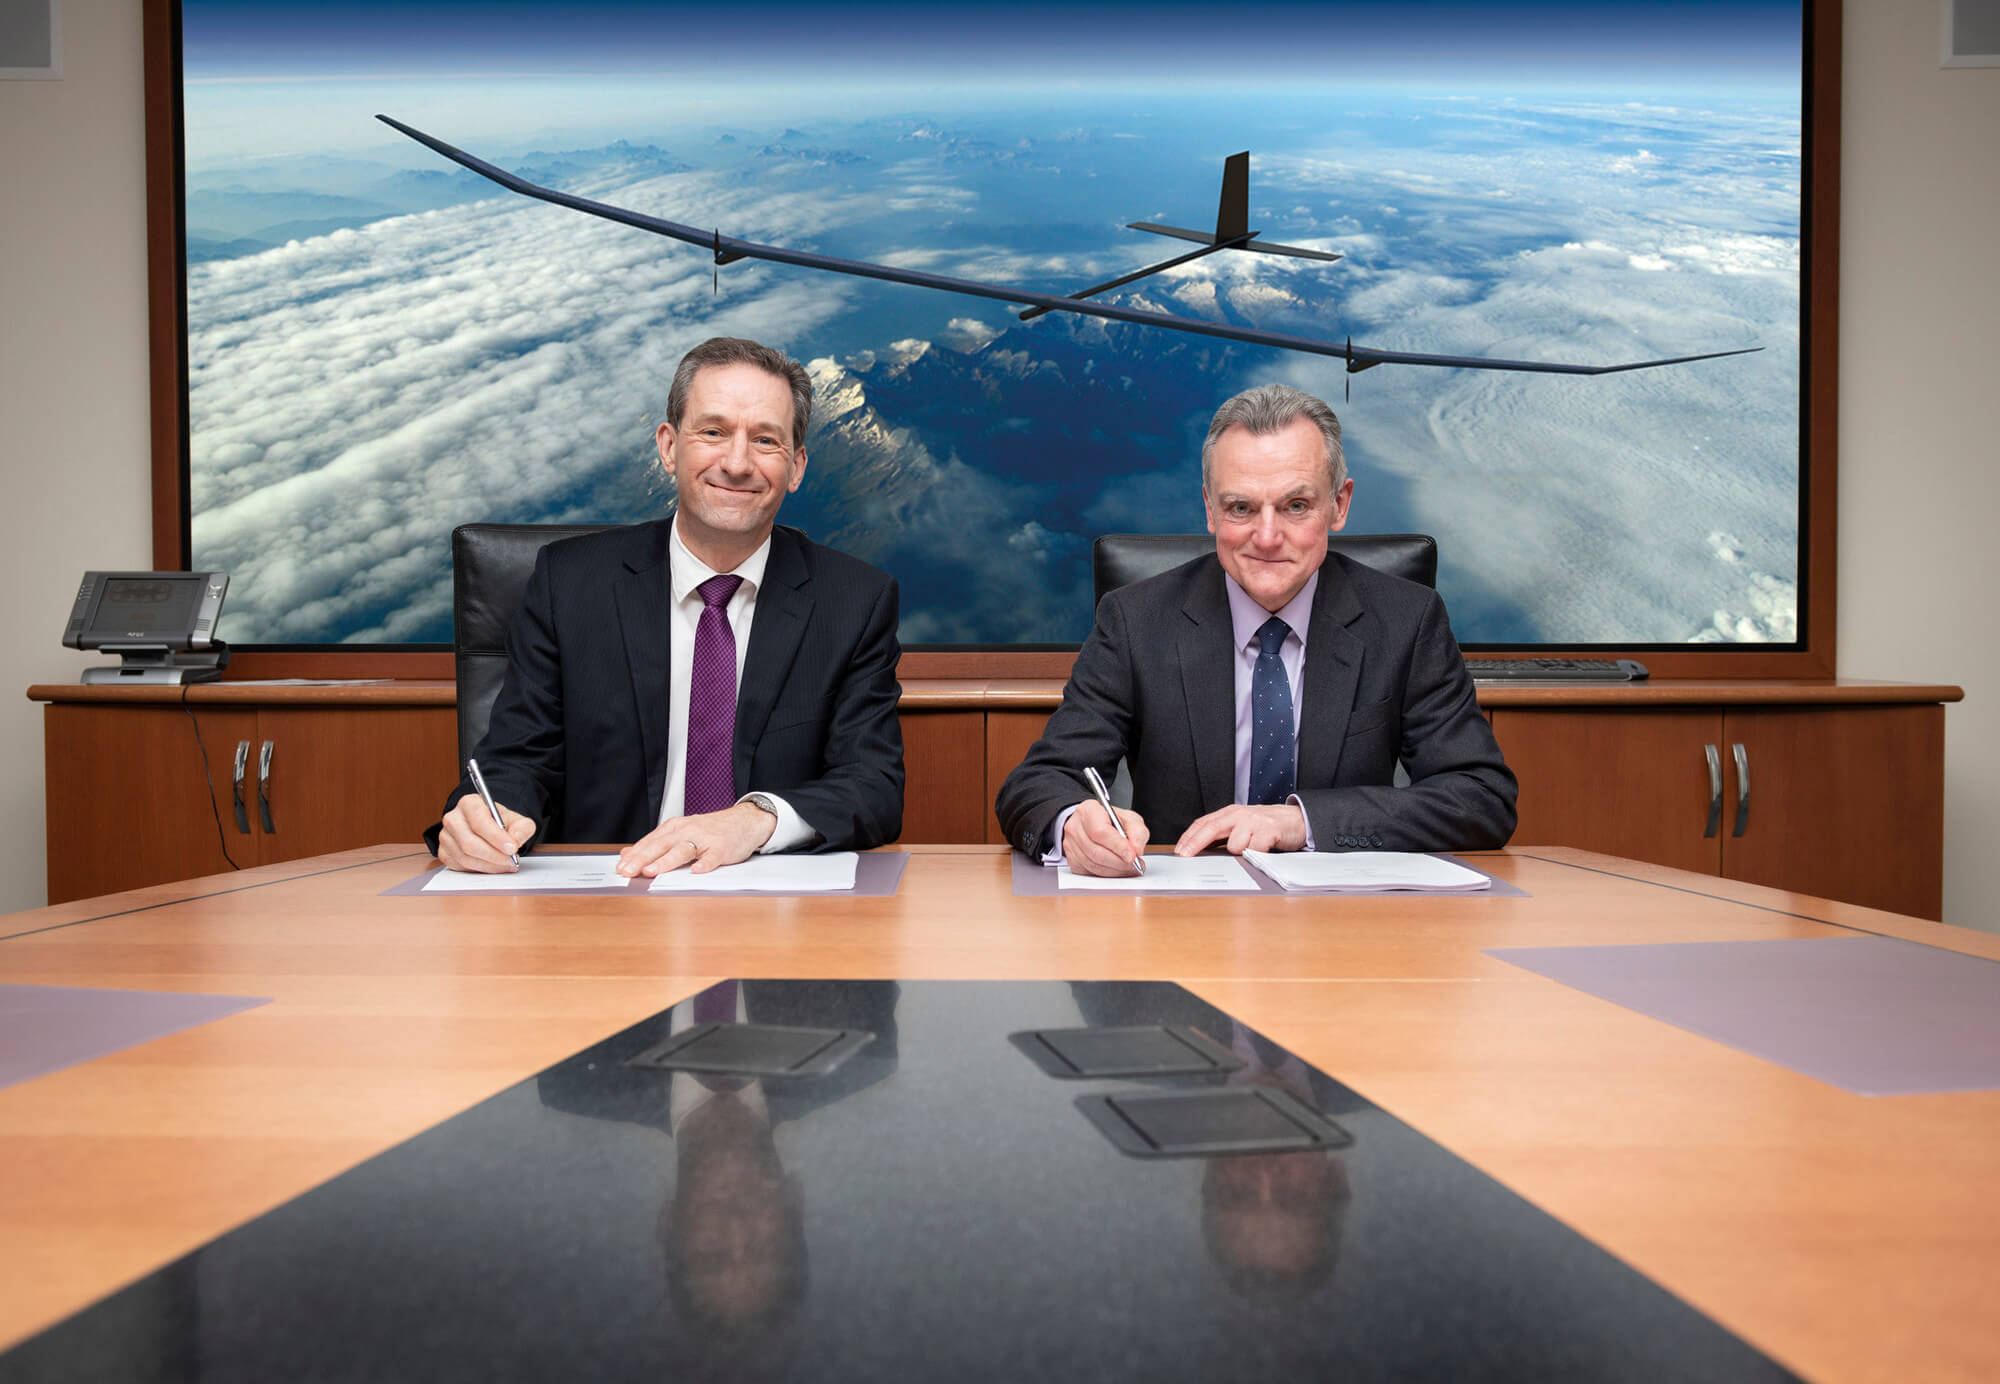 BAE Systems Teams Up With Prismatic To Develop New Solar-powered UAV